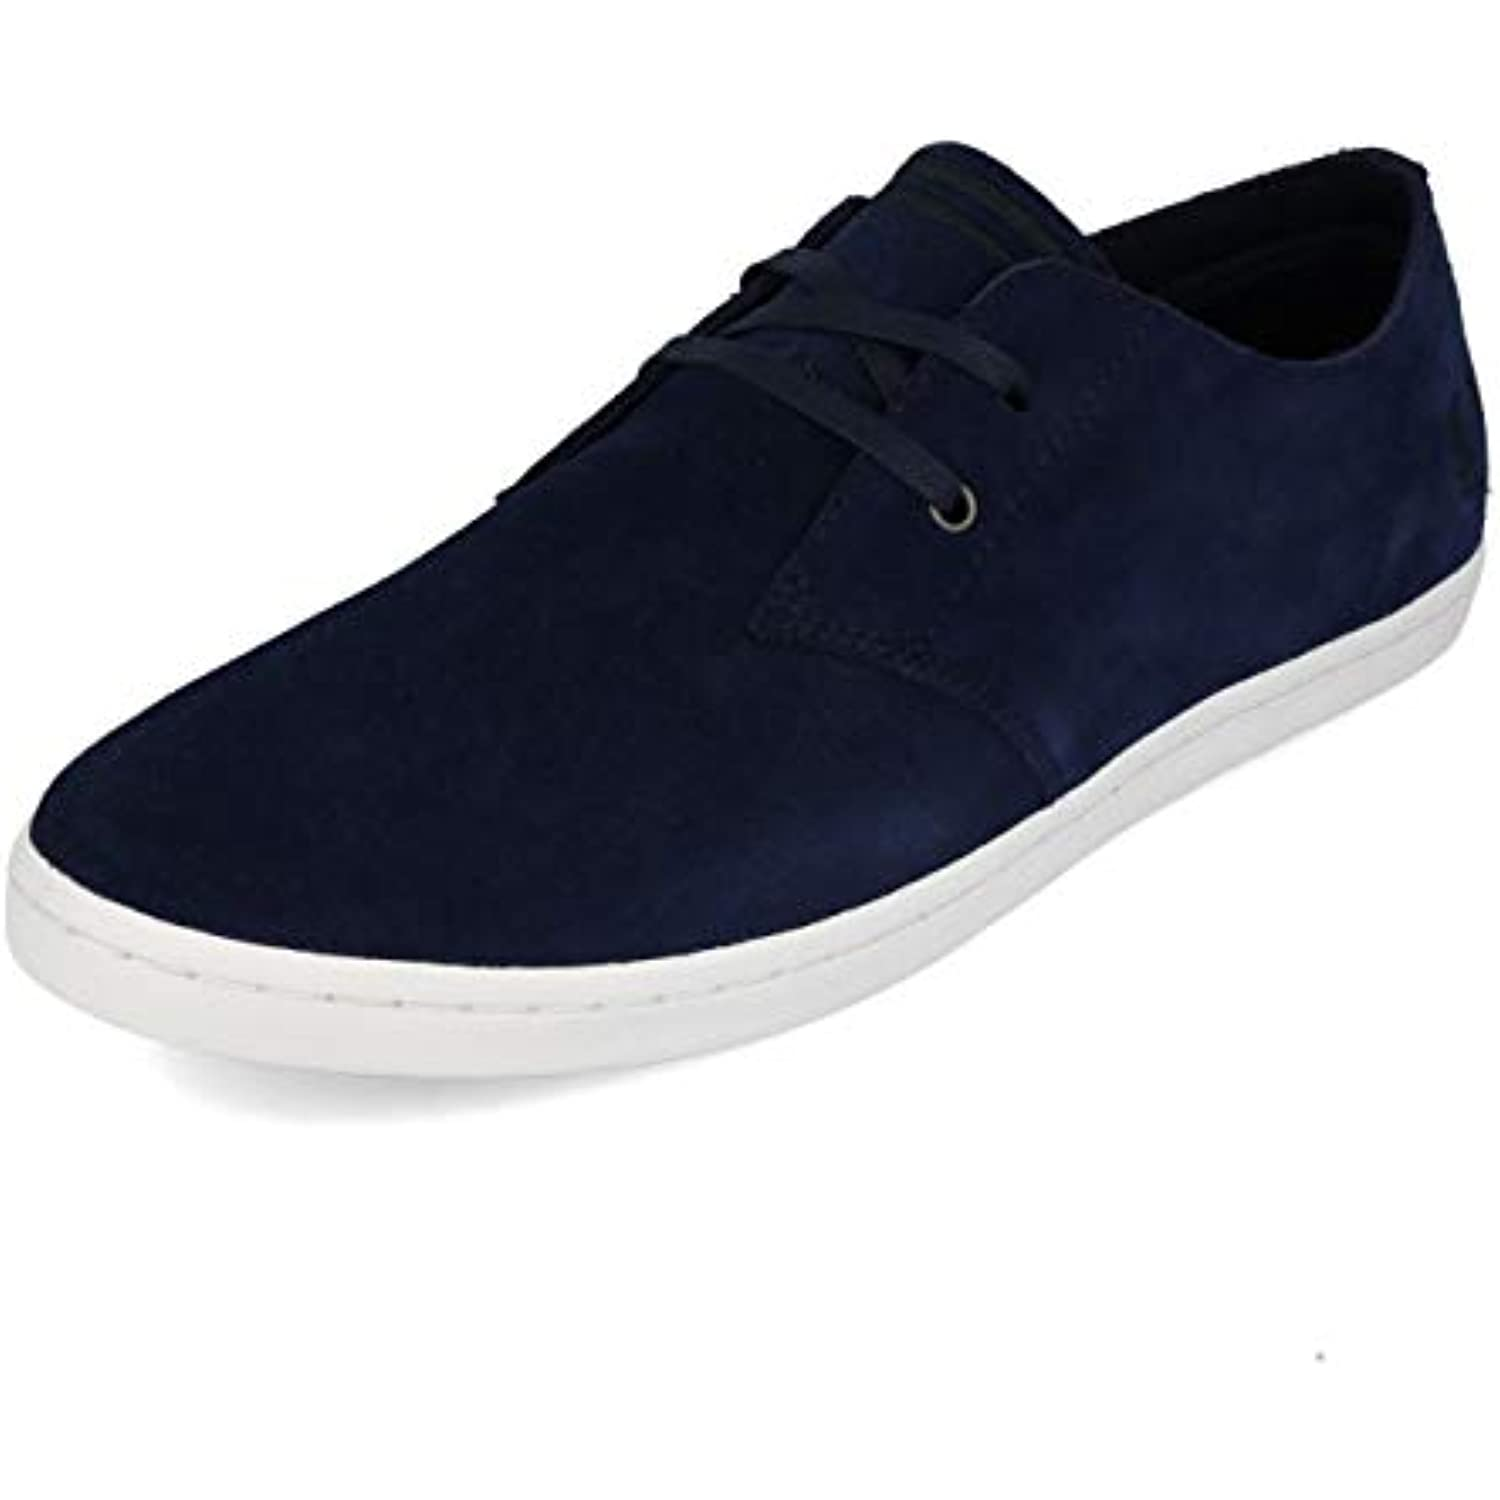 FRouge  Perry Perry Perry Byron Low Suede Carbon Blue 44 - B07H8H2XWG - 466f03